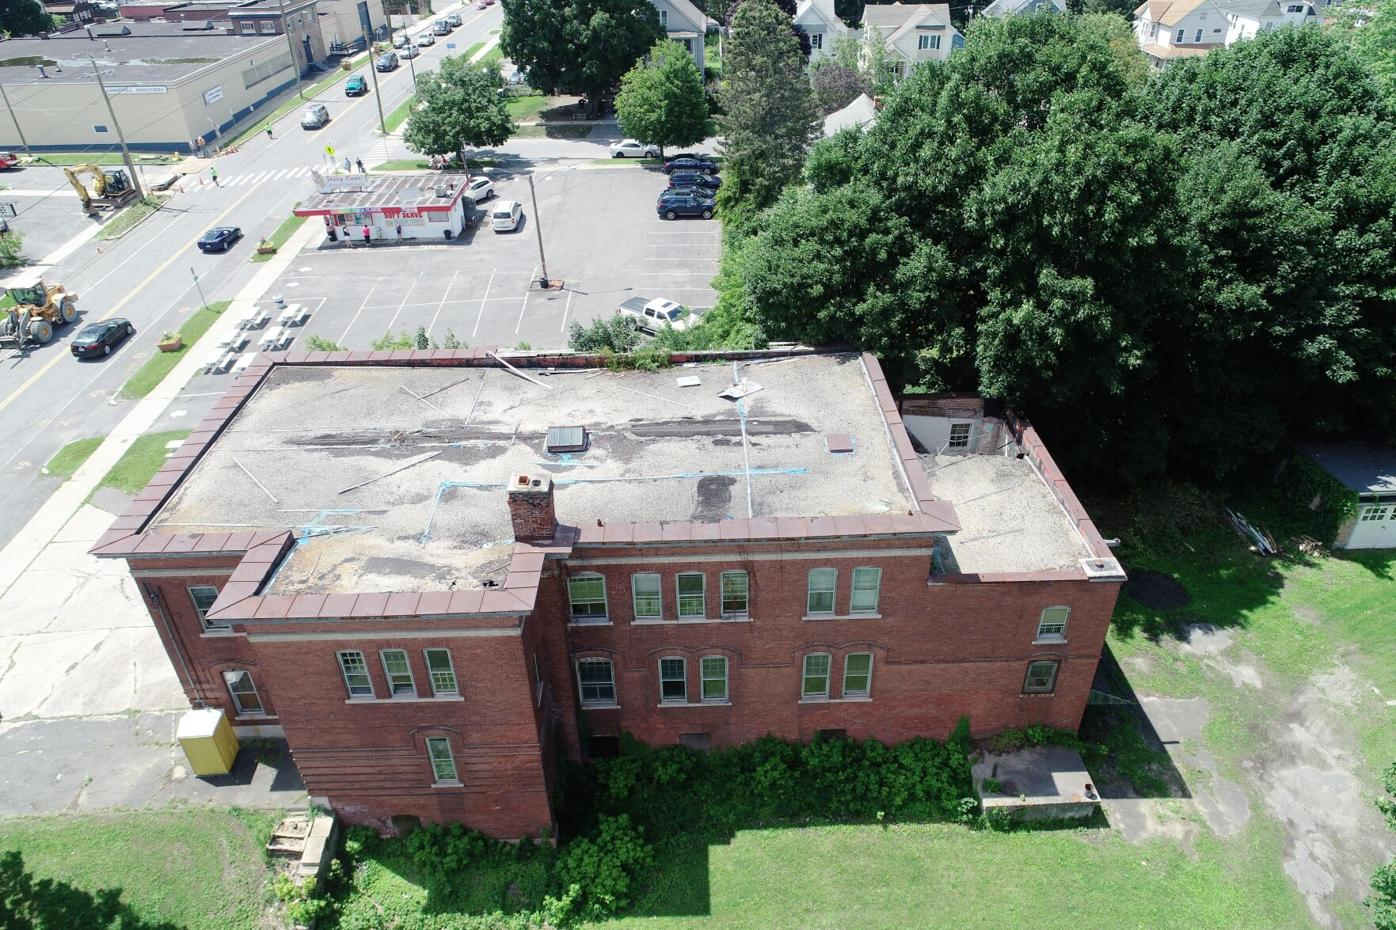 Aerial view of the Morningside Fire Station (copy)